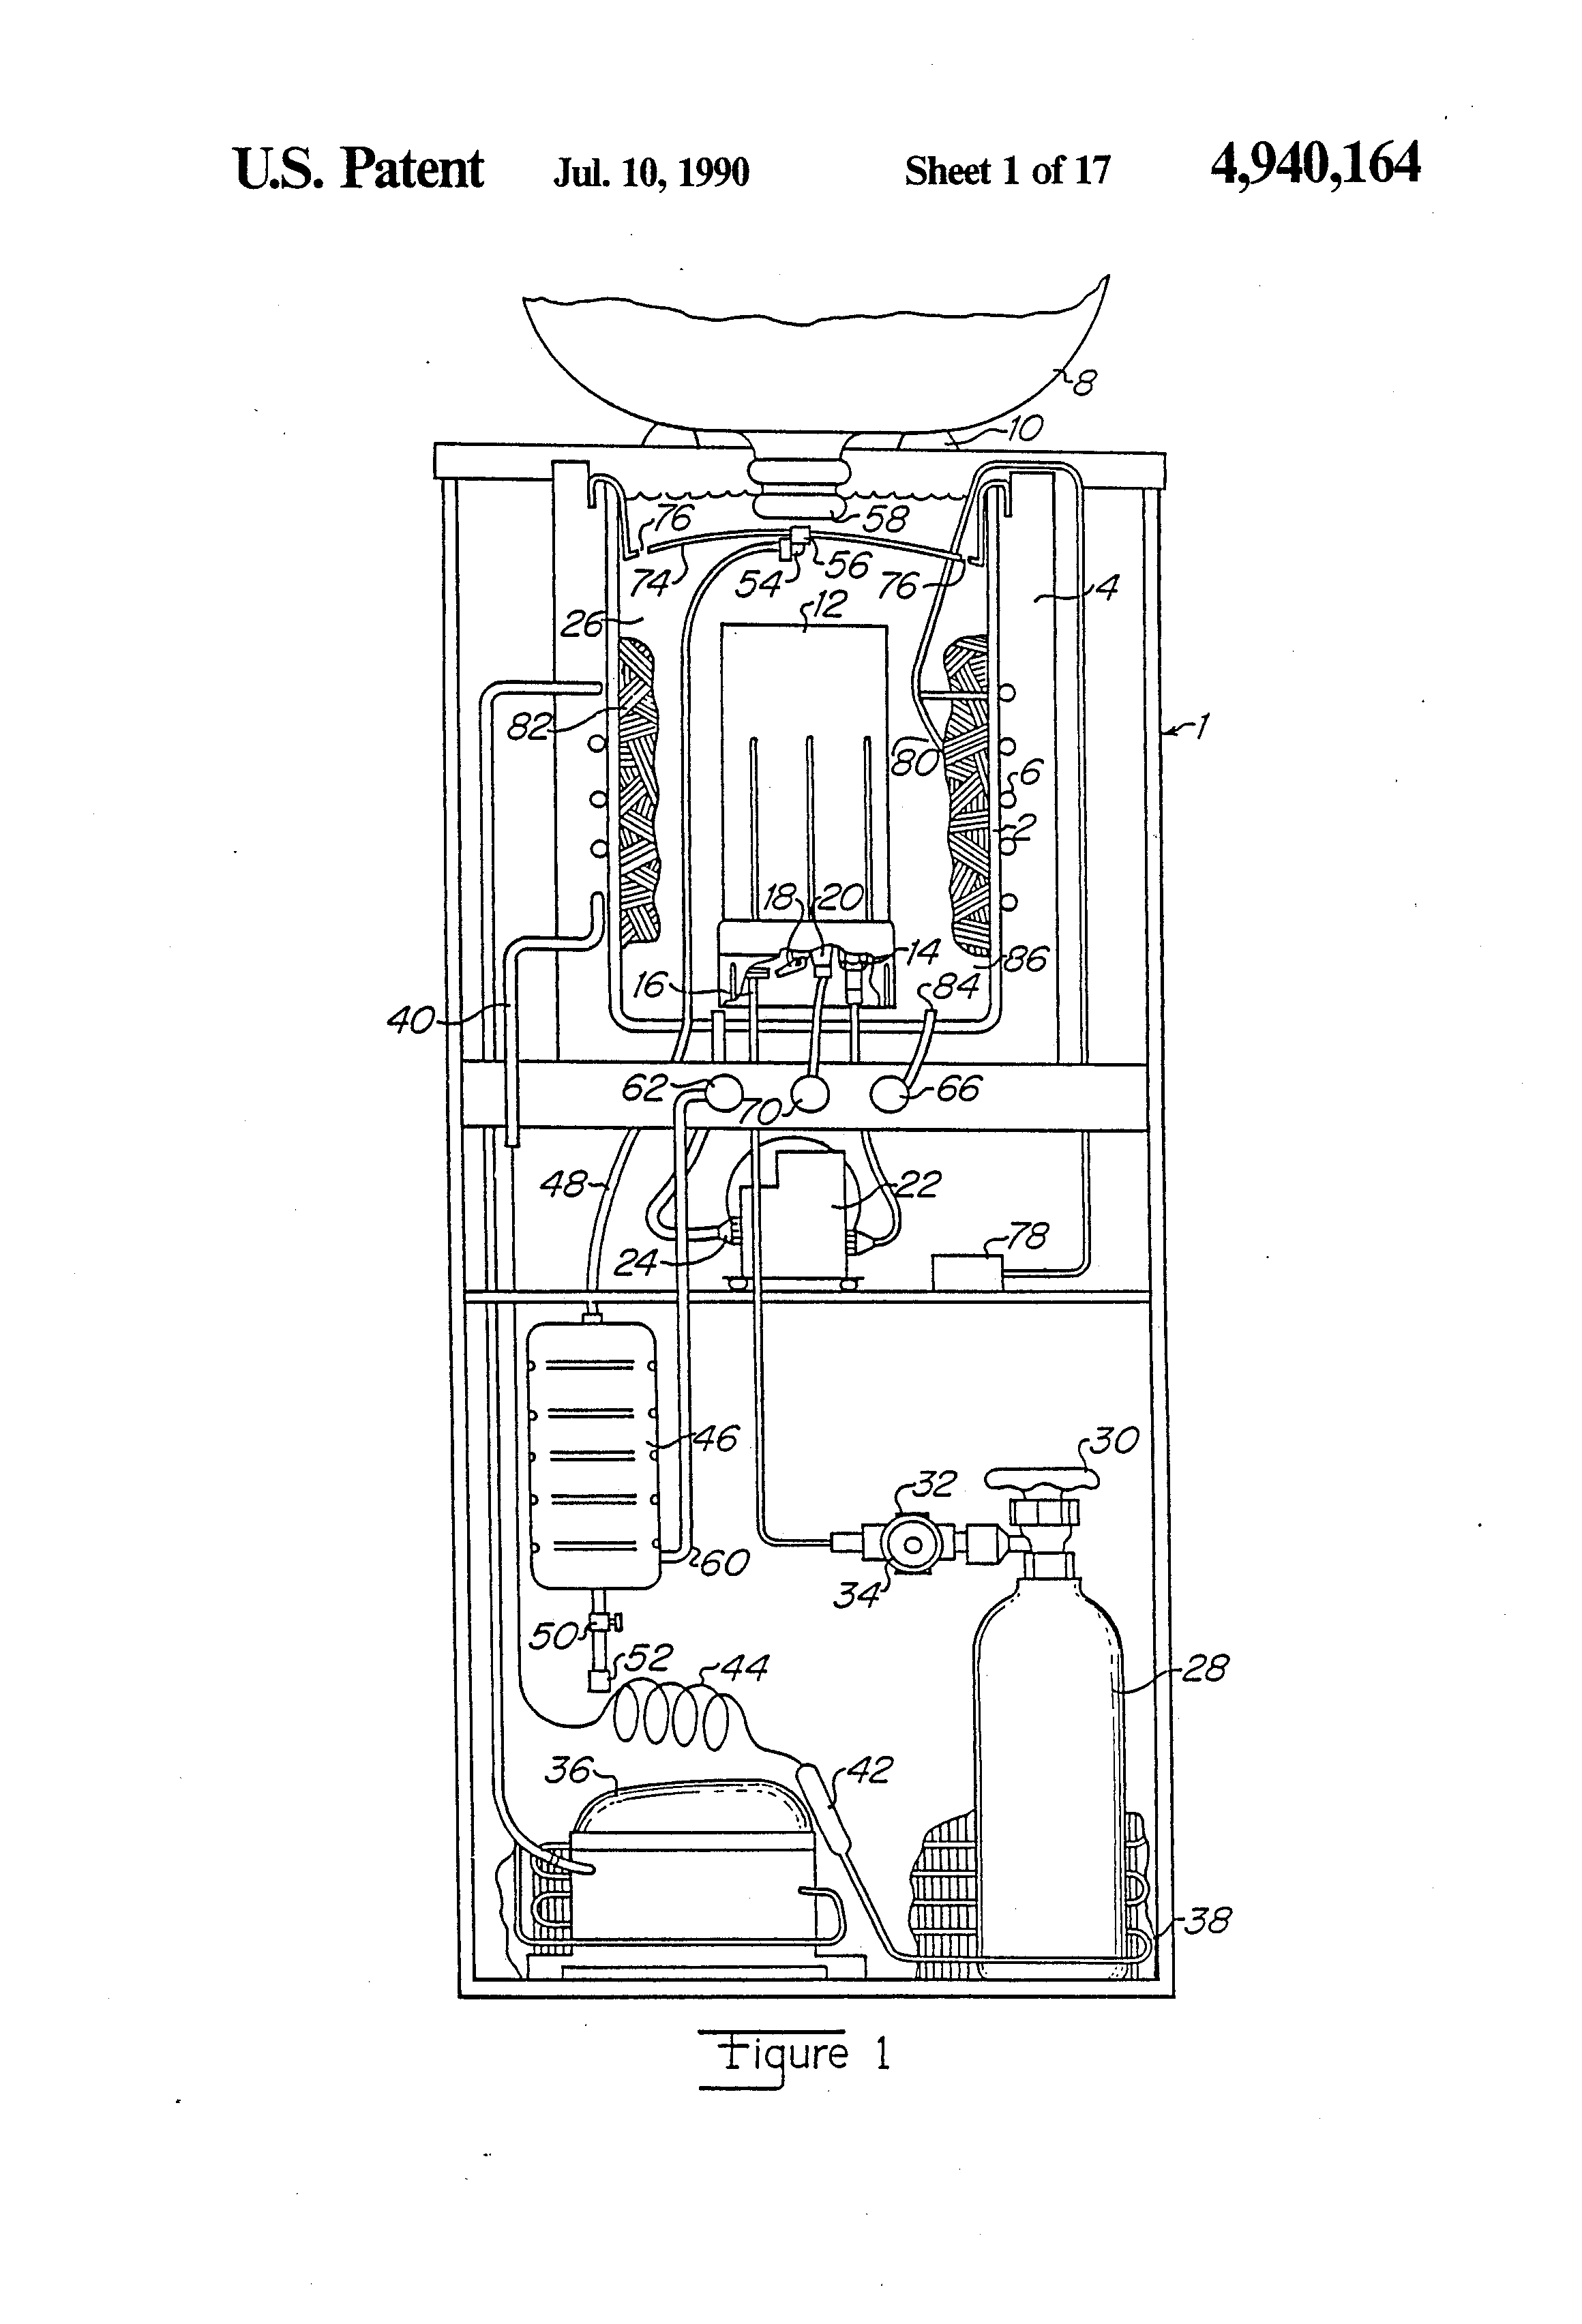 Hd Wallpapers Sodastream Parts Diagram Wallpaper